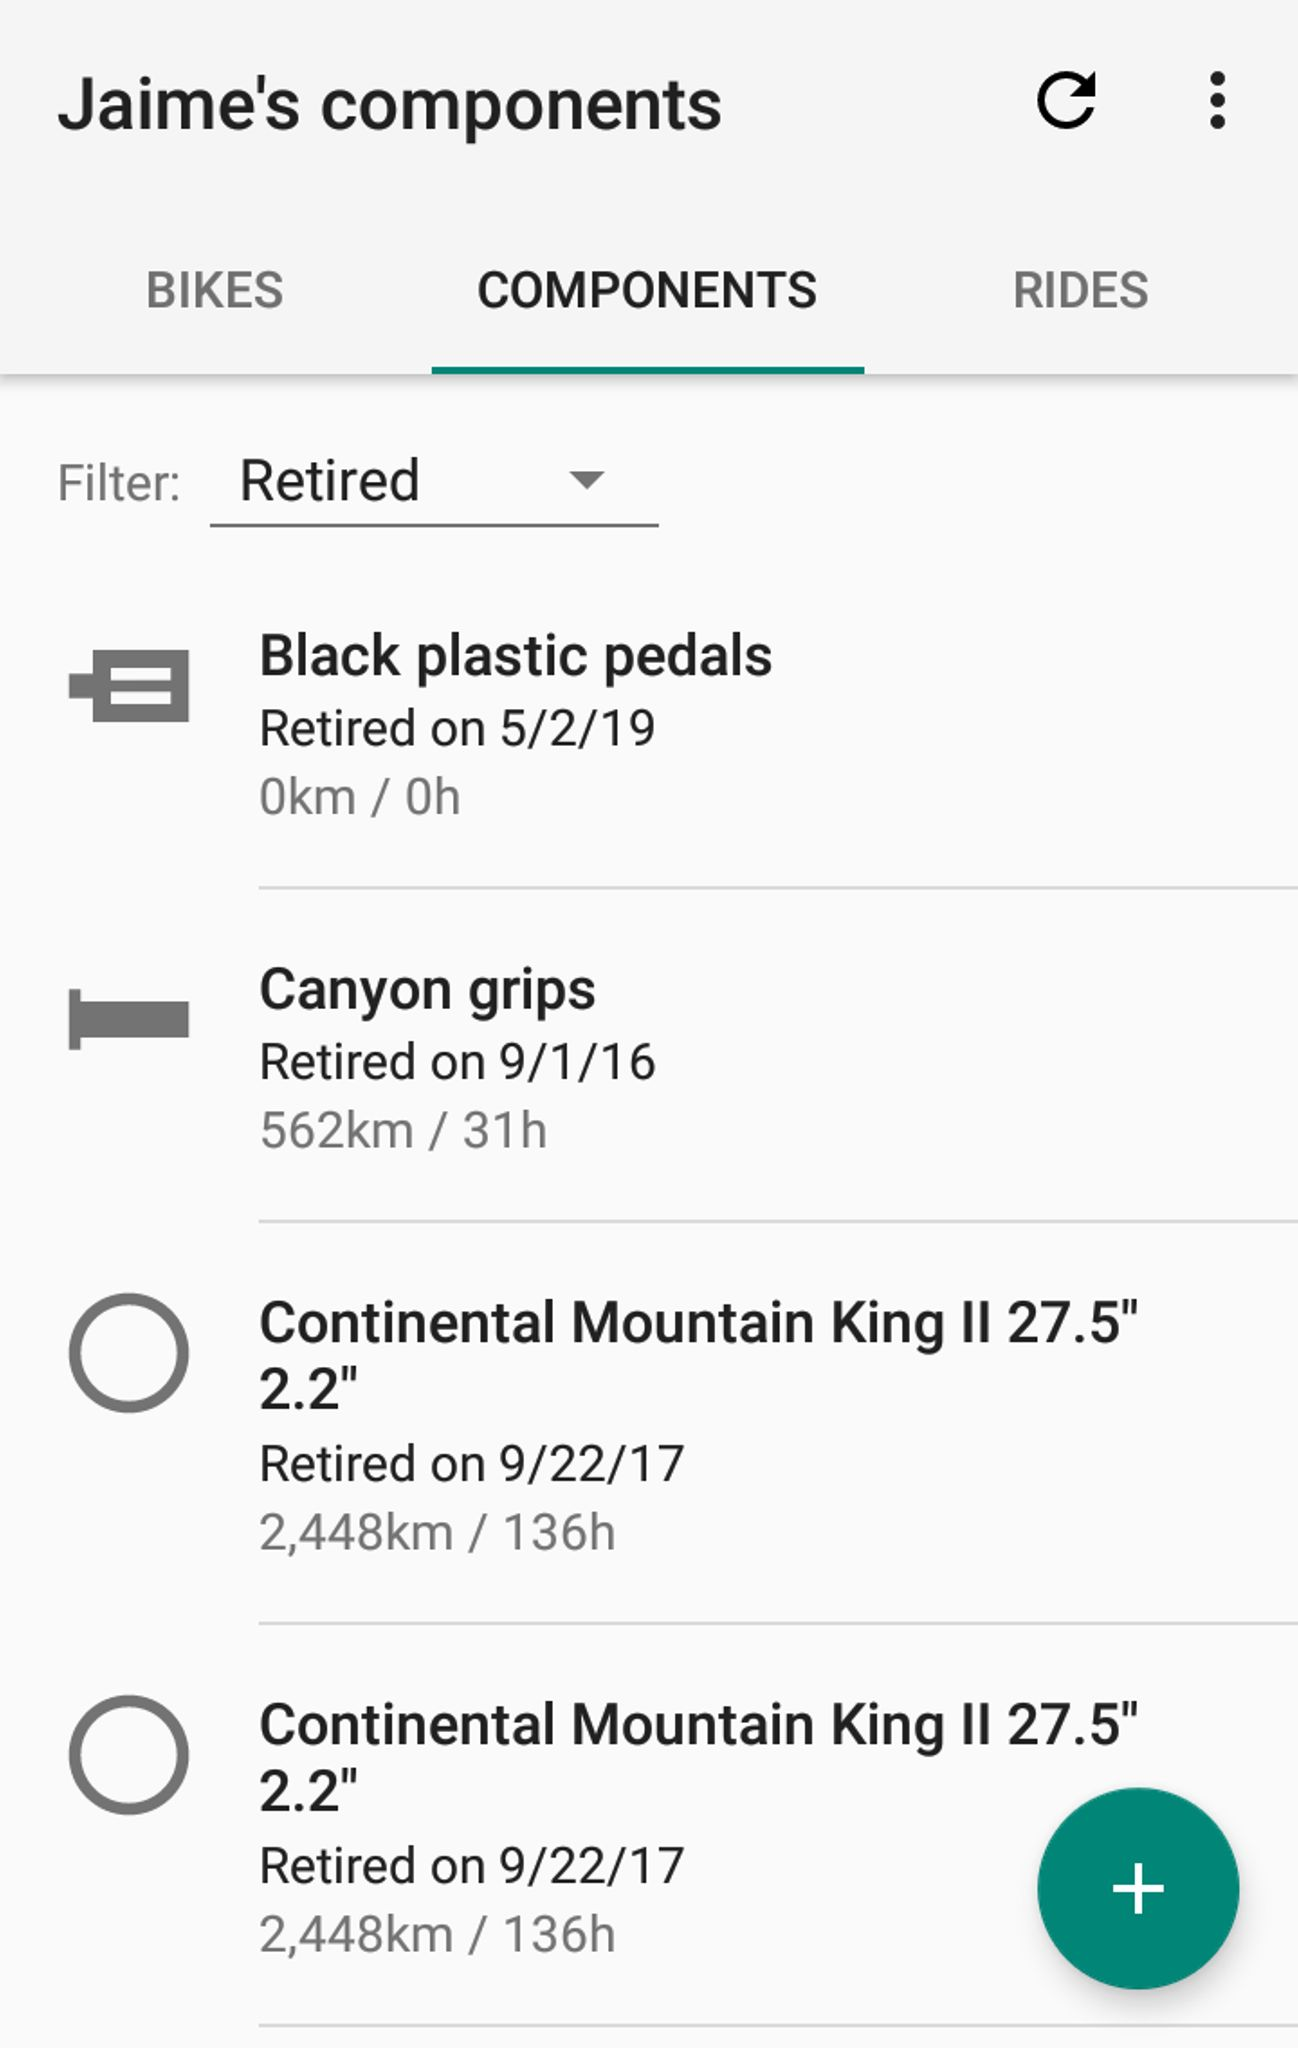 📲 New ProBikeGarage version available: Retire components